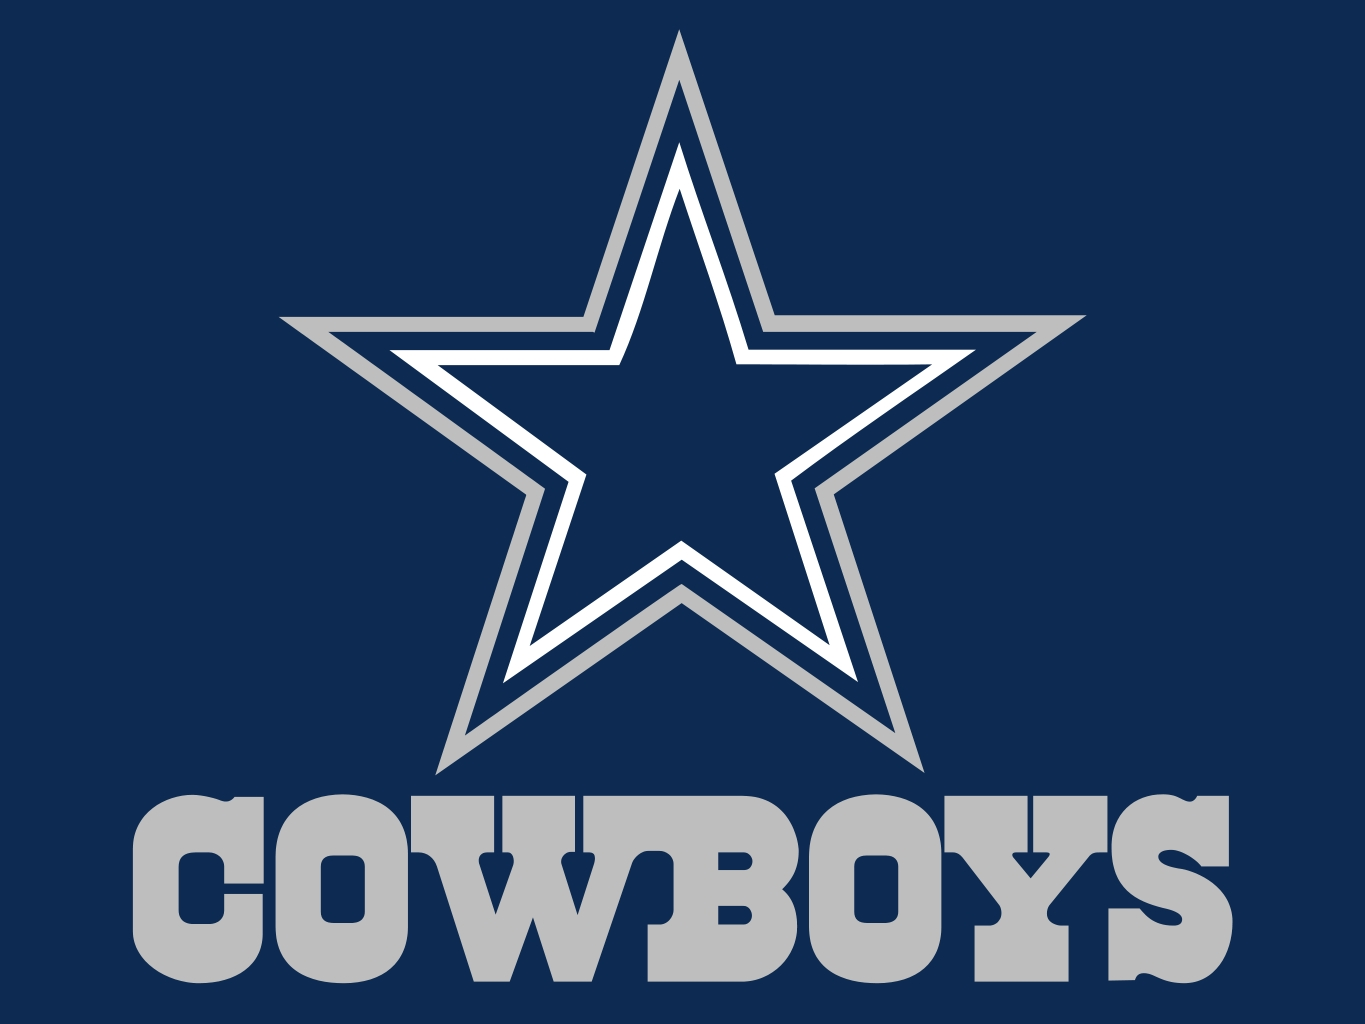 8 Dallas Cowboys Logo Vector Images Dallas Cowboys Logo